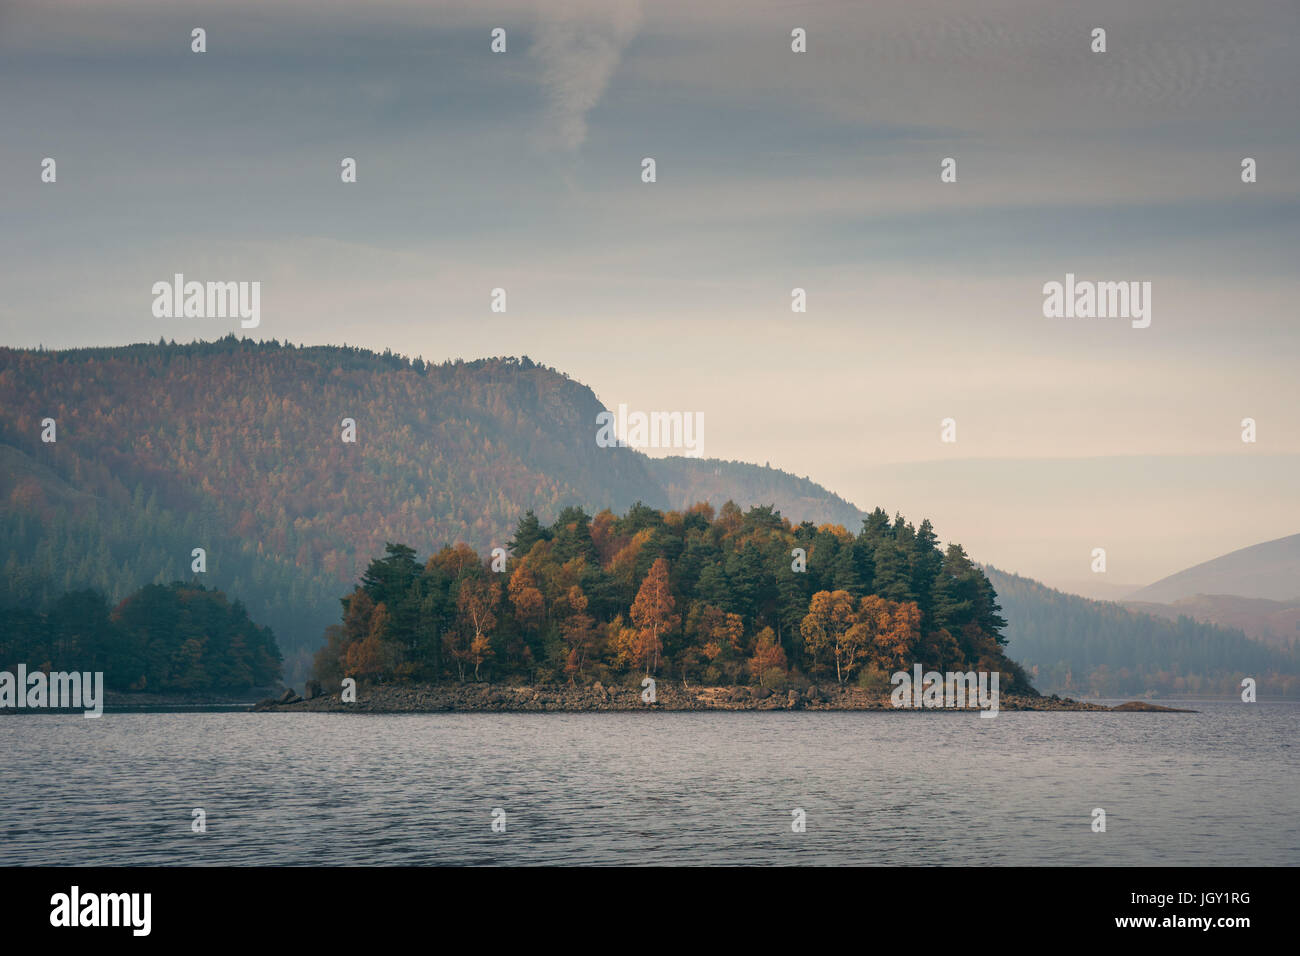 View of Thirlmere lake, The Lake District, UK - Stock Image